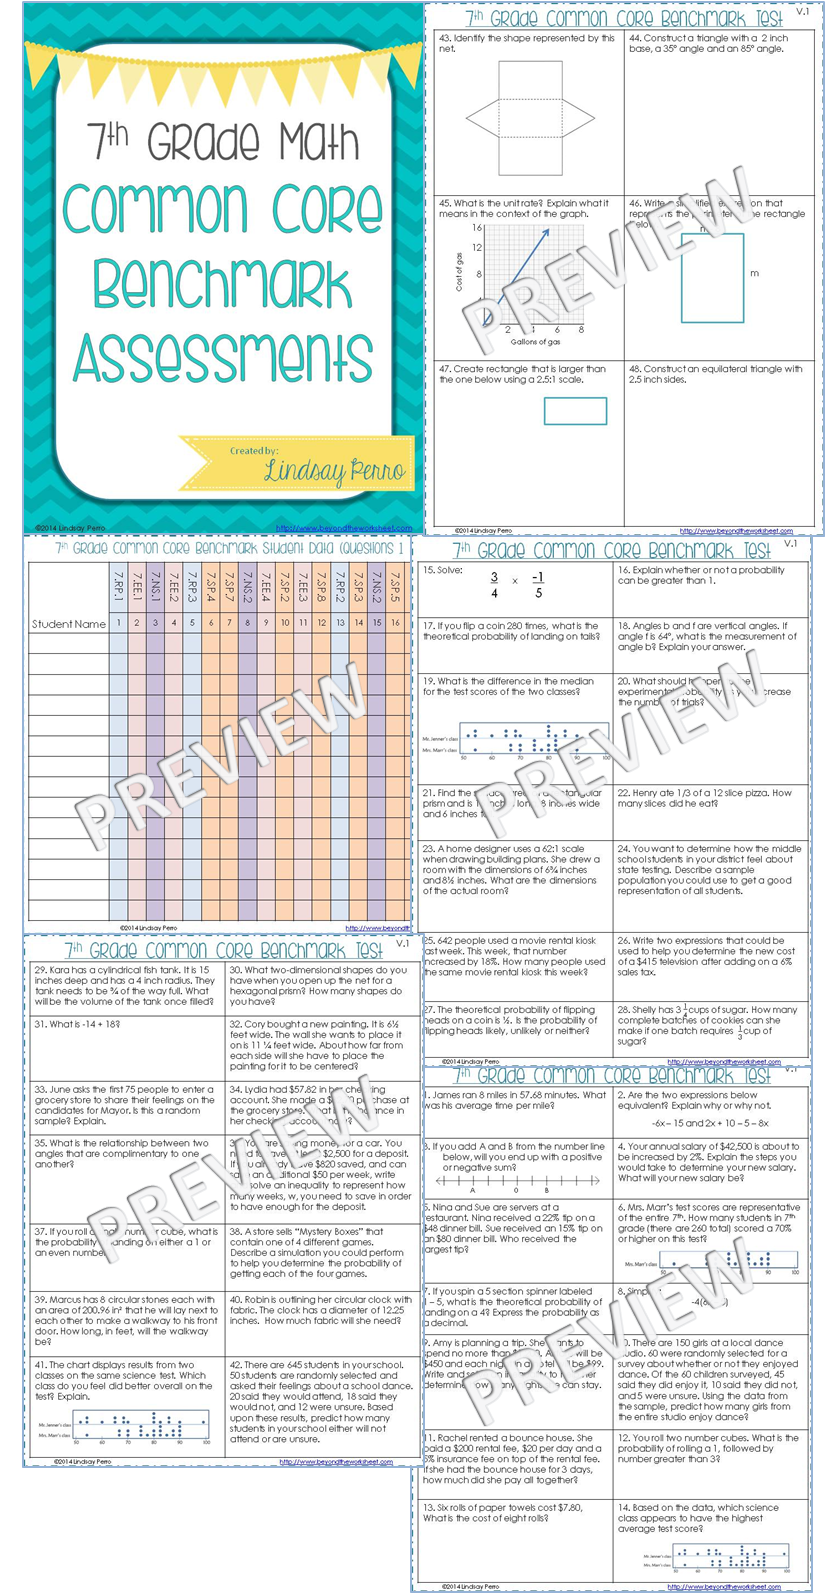 7th Grade Math Common Core Benchmark Exam - Two versions of the same test  are included, each with 48 questions. The questions on each version are  nearly ...